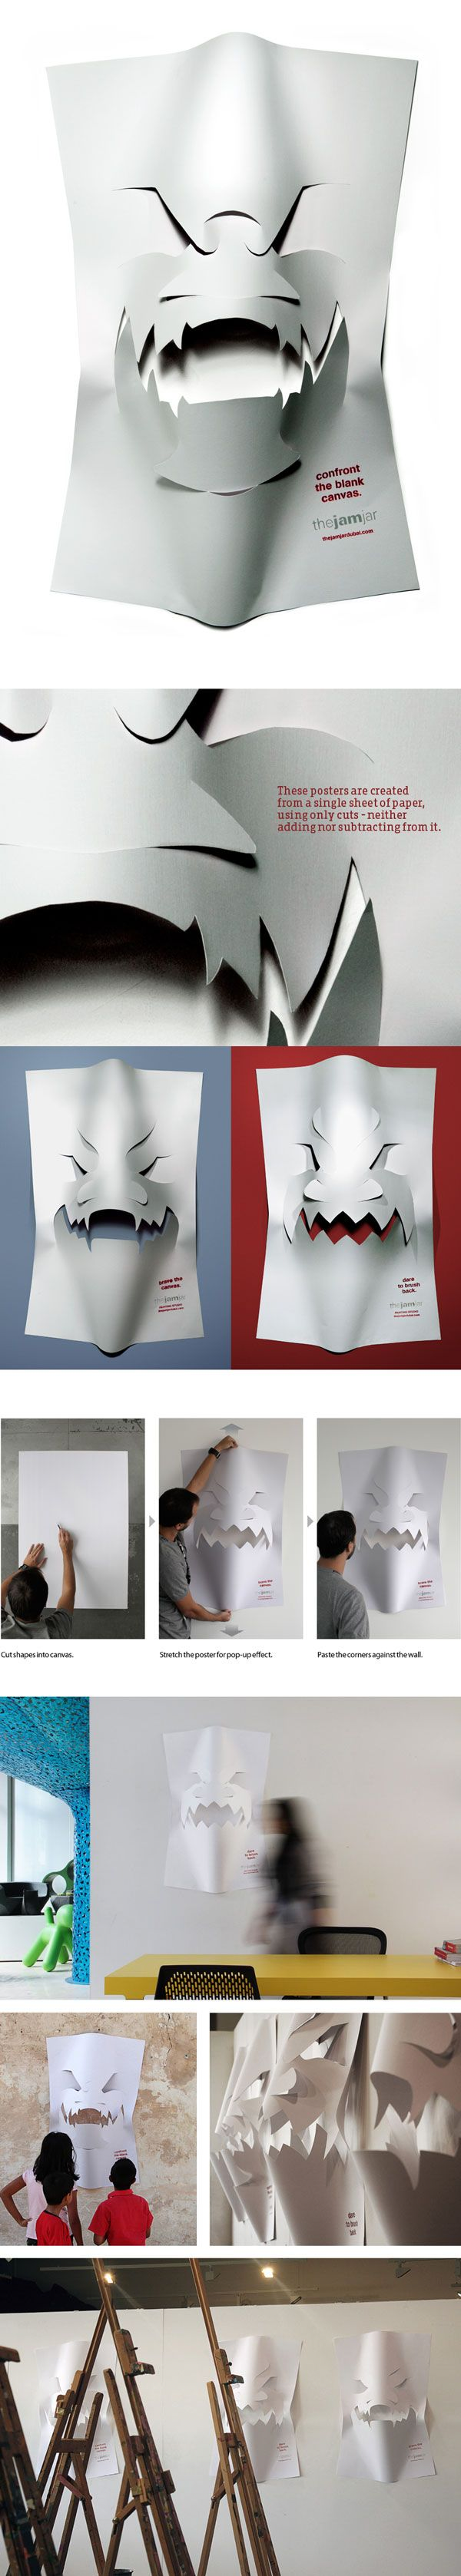 Blank Canvas posters by Leo Rosa Borges, via BehanceMonster Party, Canvas Posters, Blank Canvas, Paper Art, Leo Rosa, 3D Posters, Rosa Borges, Design Posters, Art Assignments